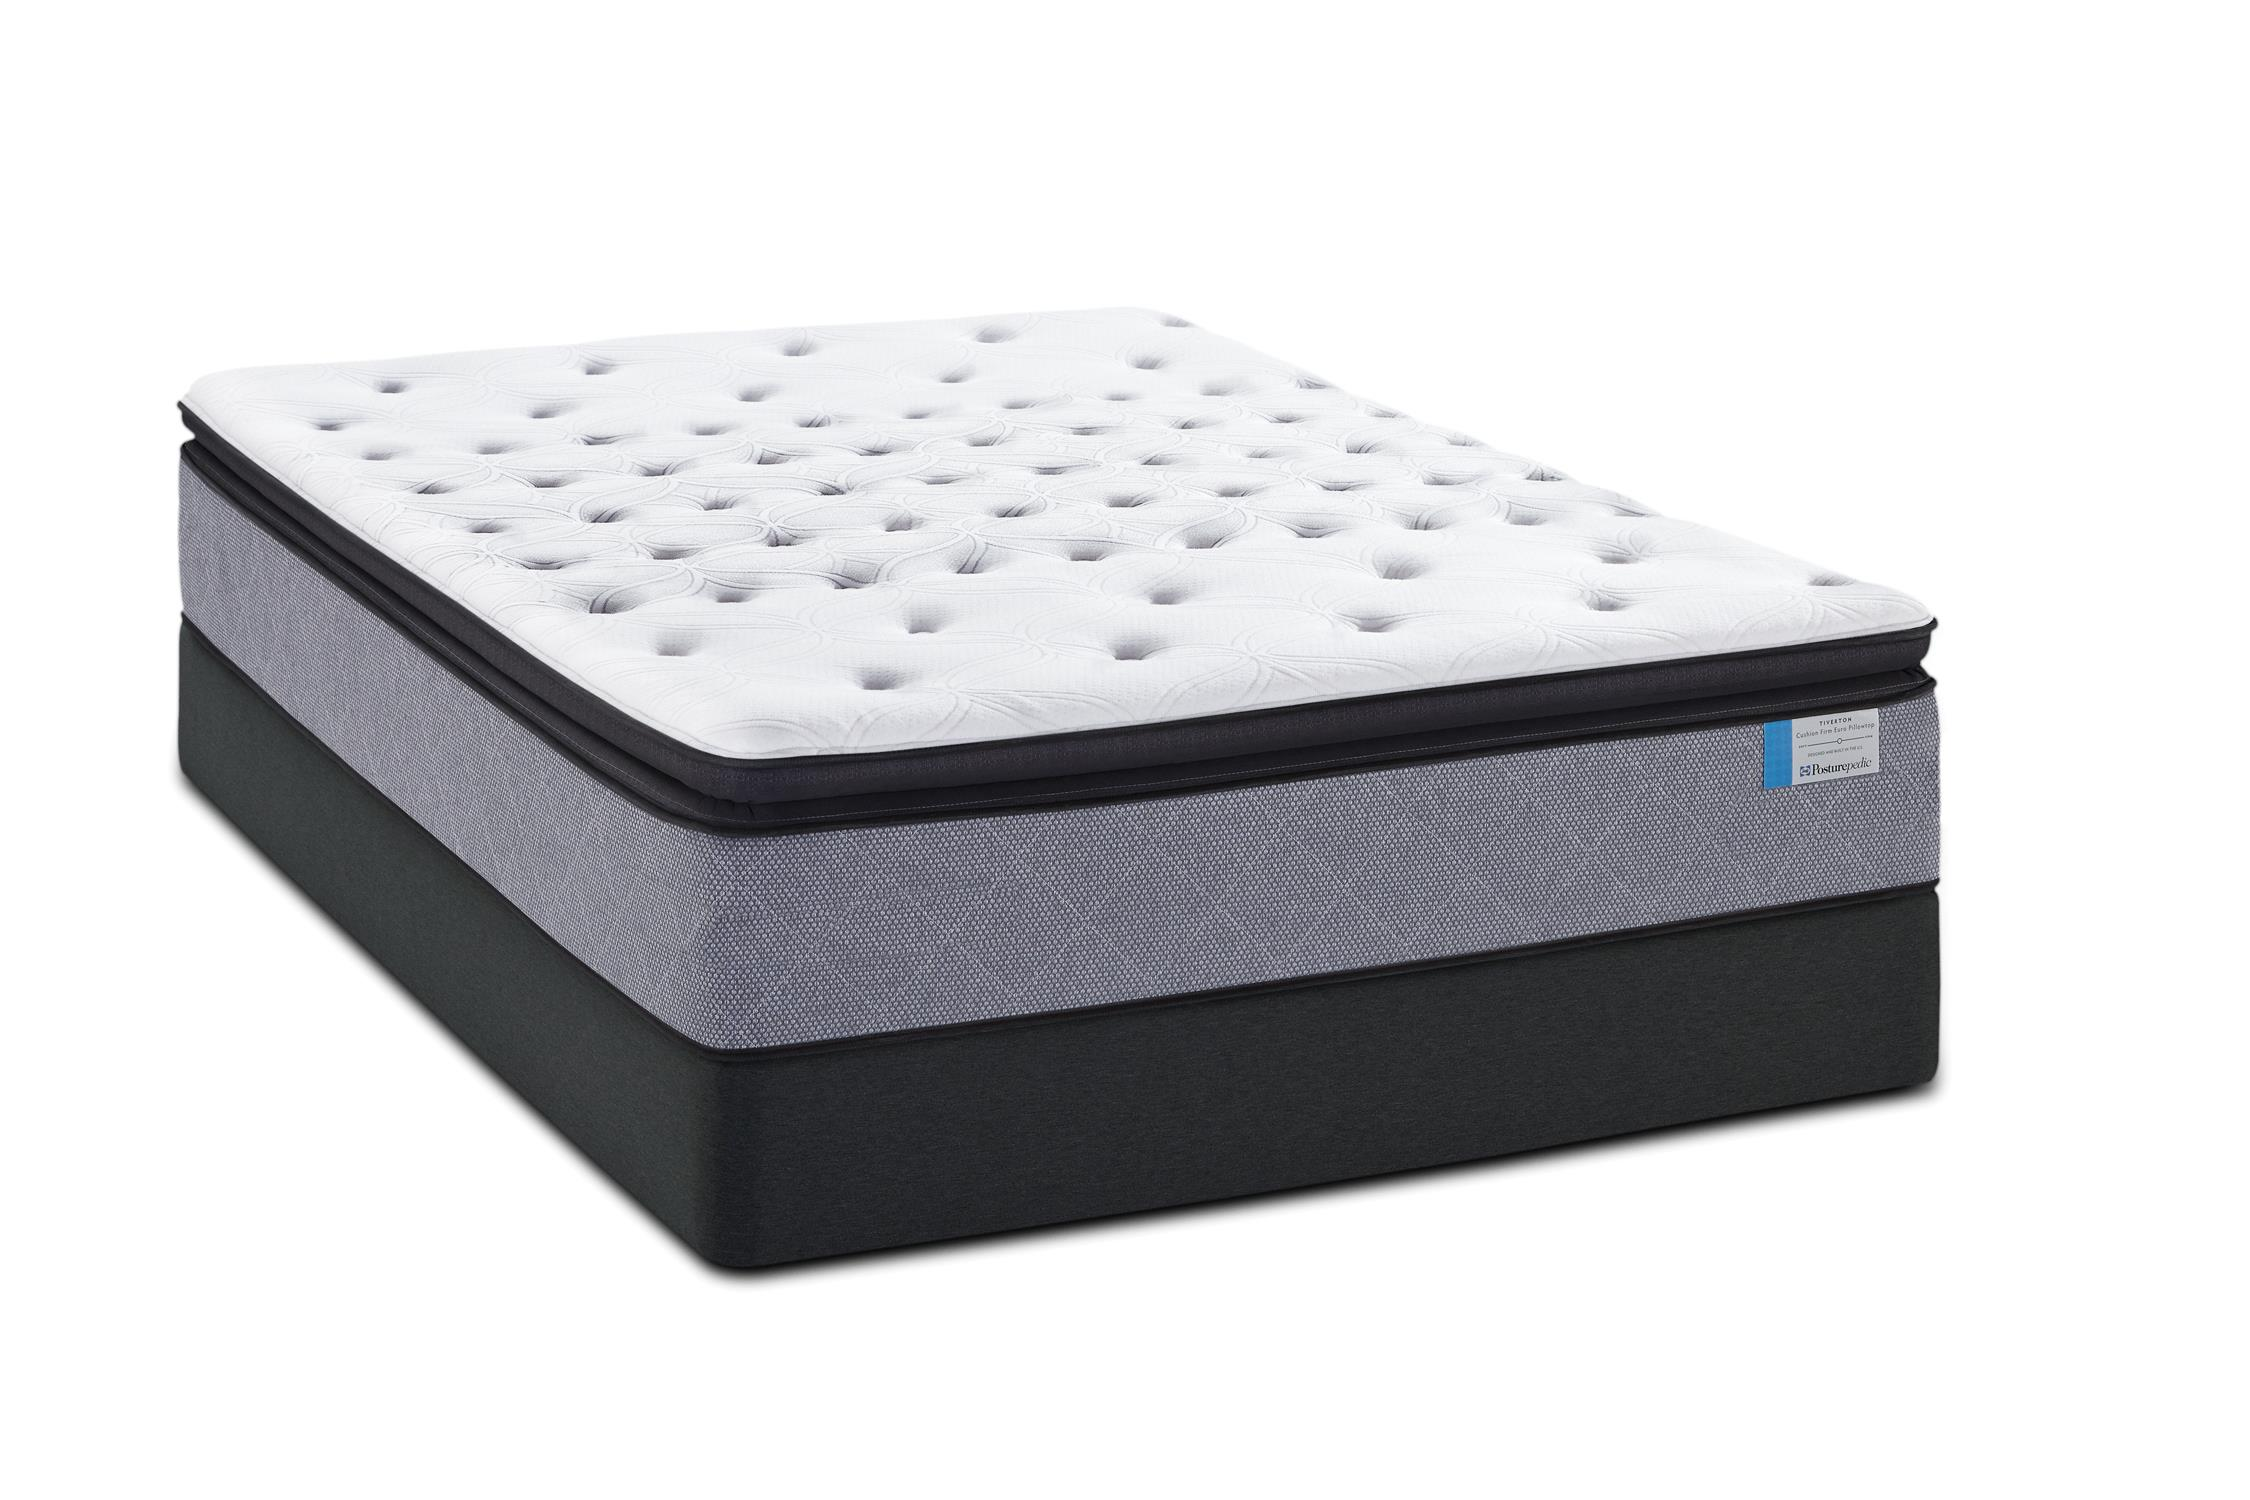 Sealy Posturepedic A2 Cal King EPT Plush Mattress Set - Item Number: PlushEPT-CK+2xSSfoundation-CK